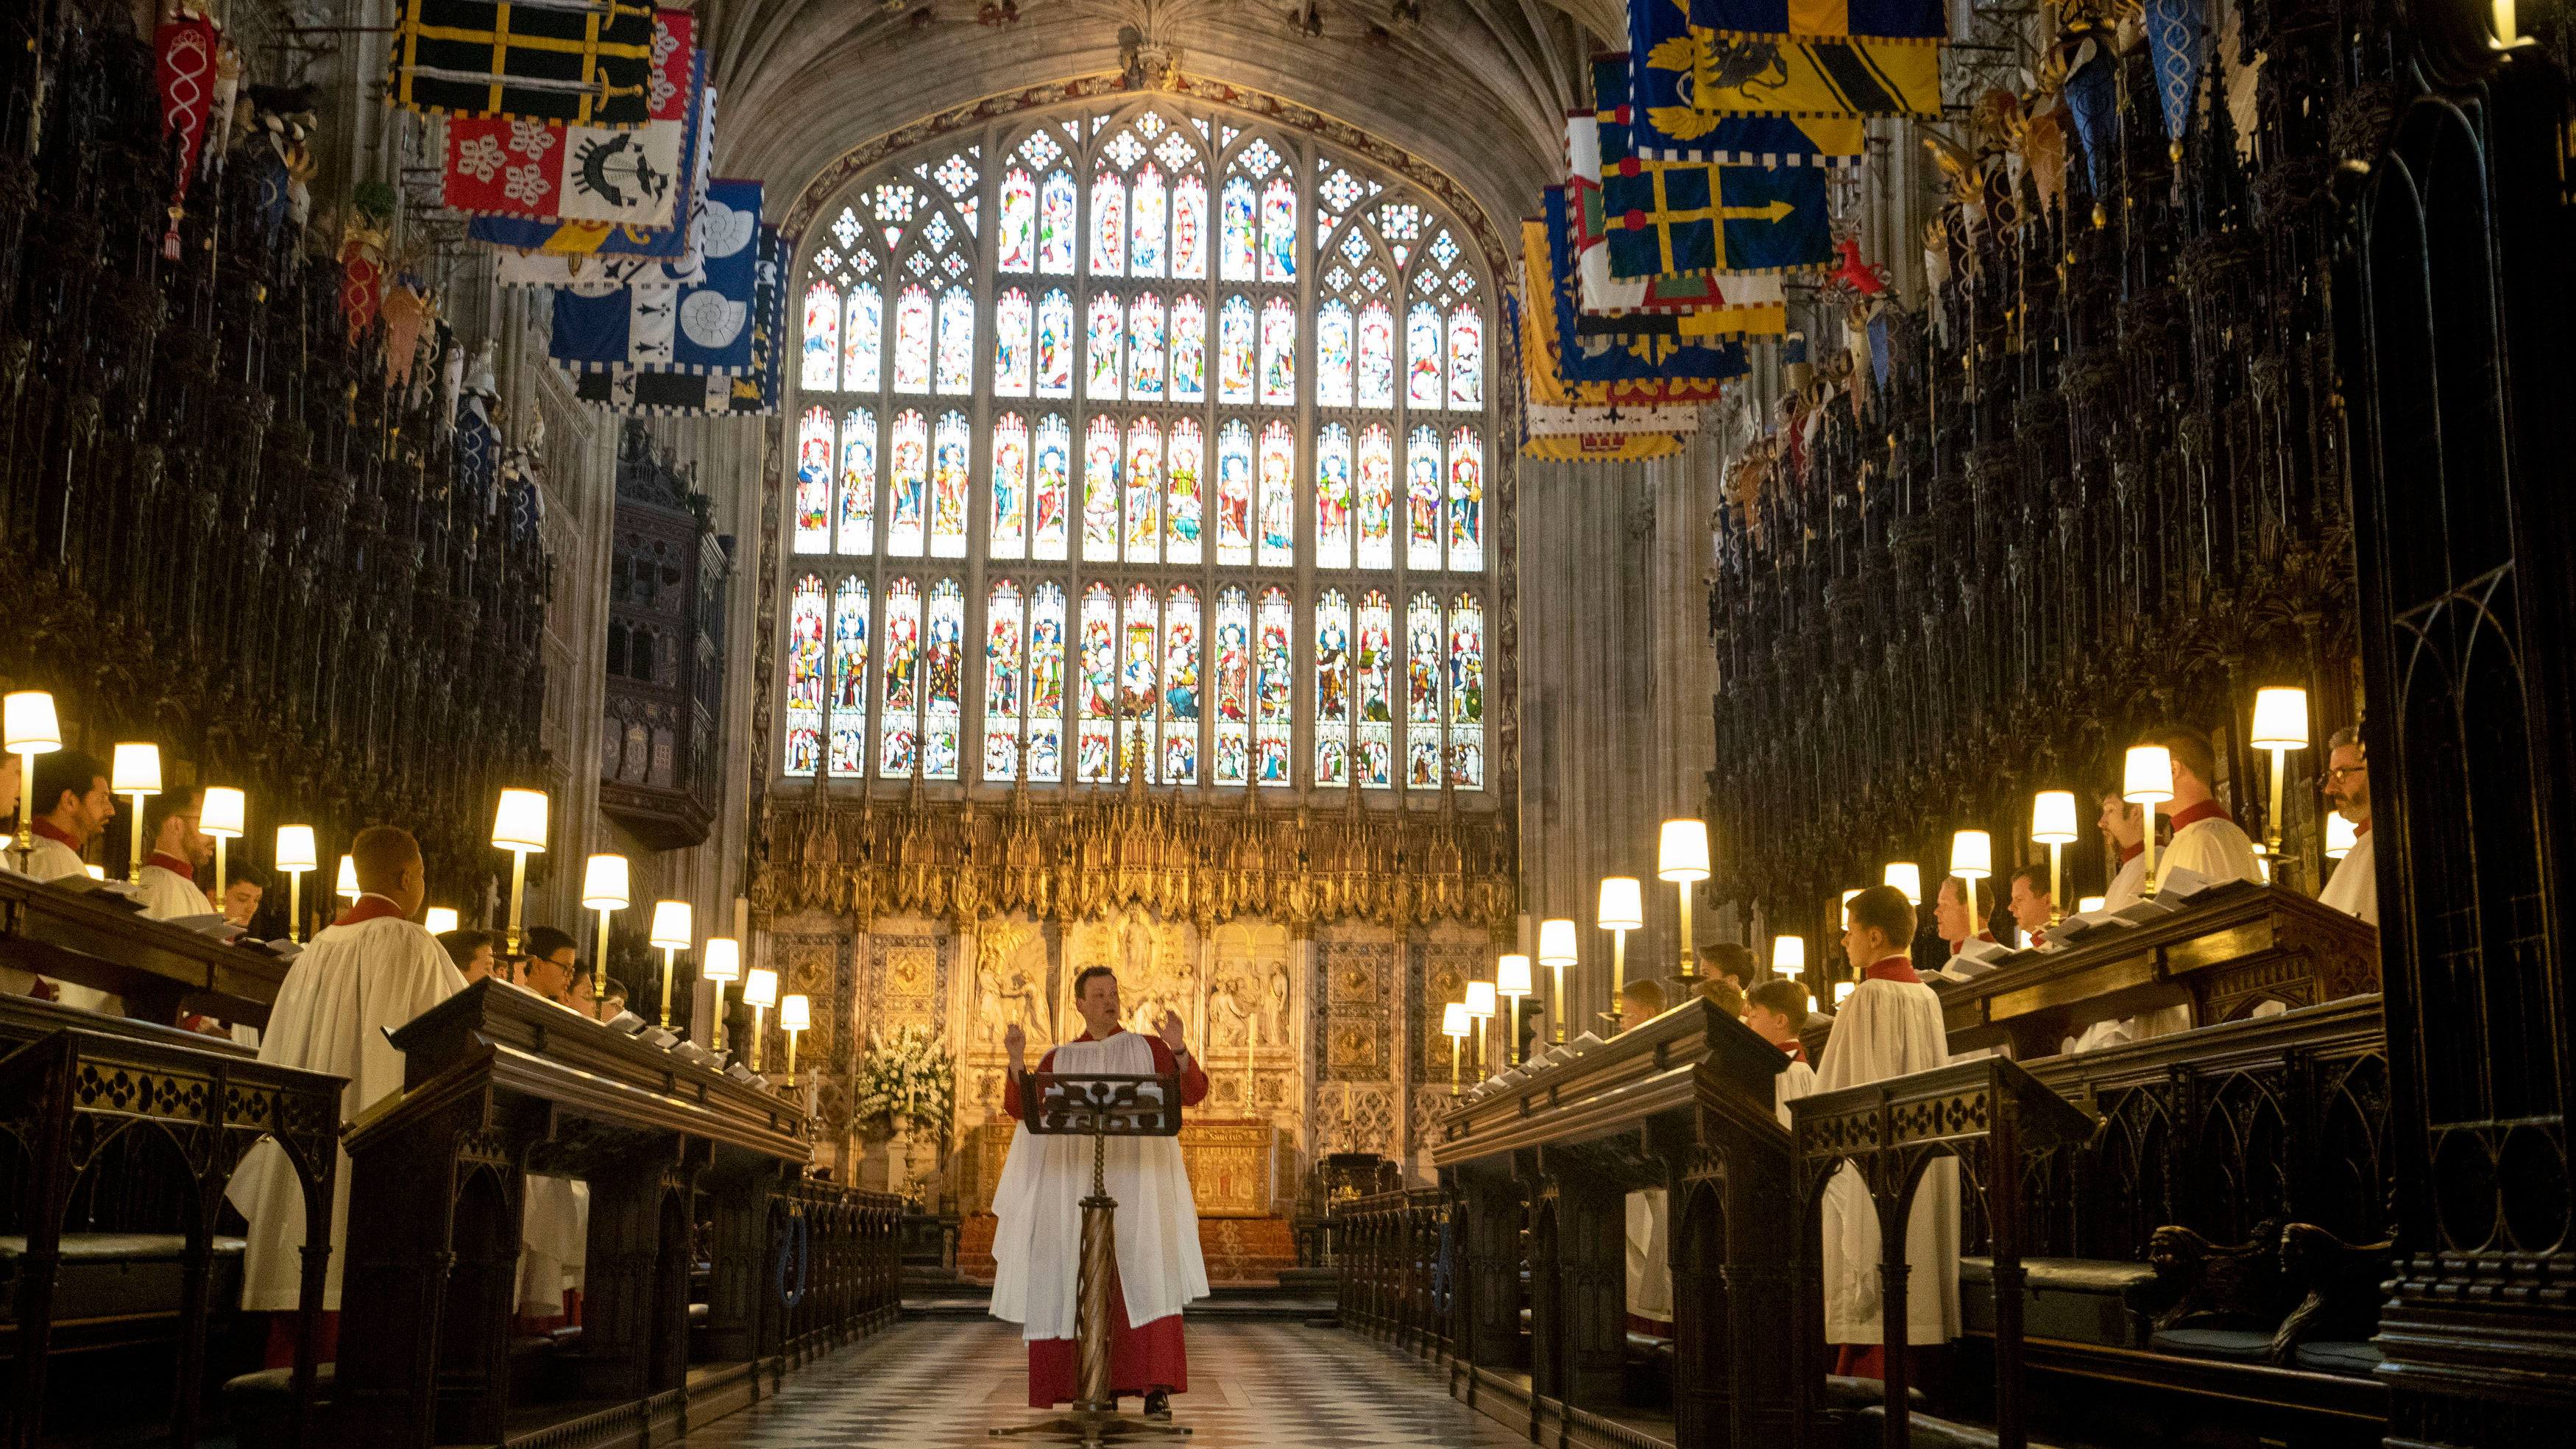 The Choir Of St Georges Chapel Windsor Castle Christmas 2020 St Georges Chapel Windsor Christmas Carols Guitar   Rnxqmm